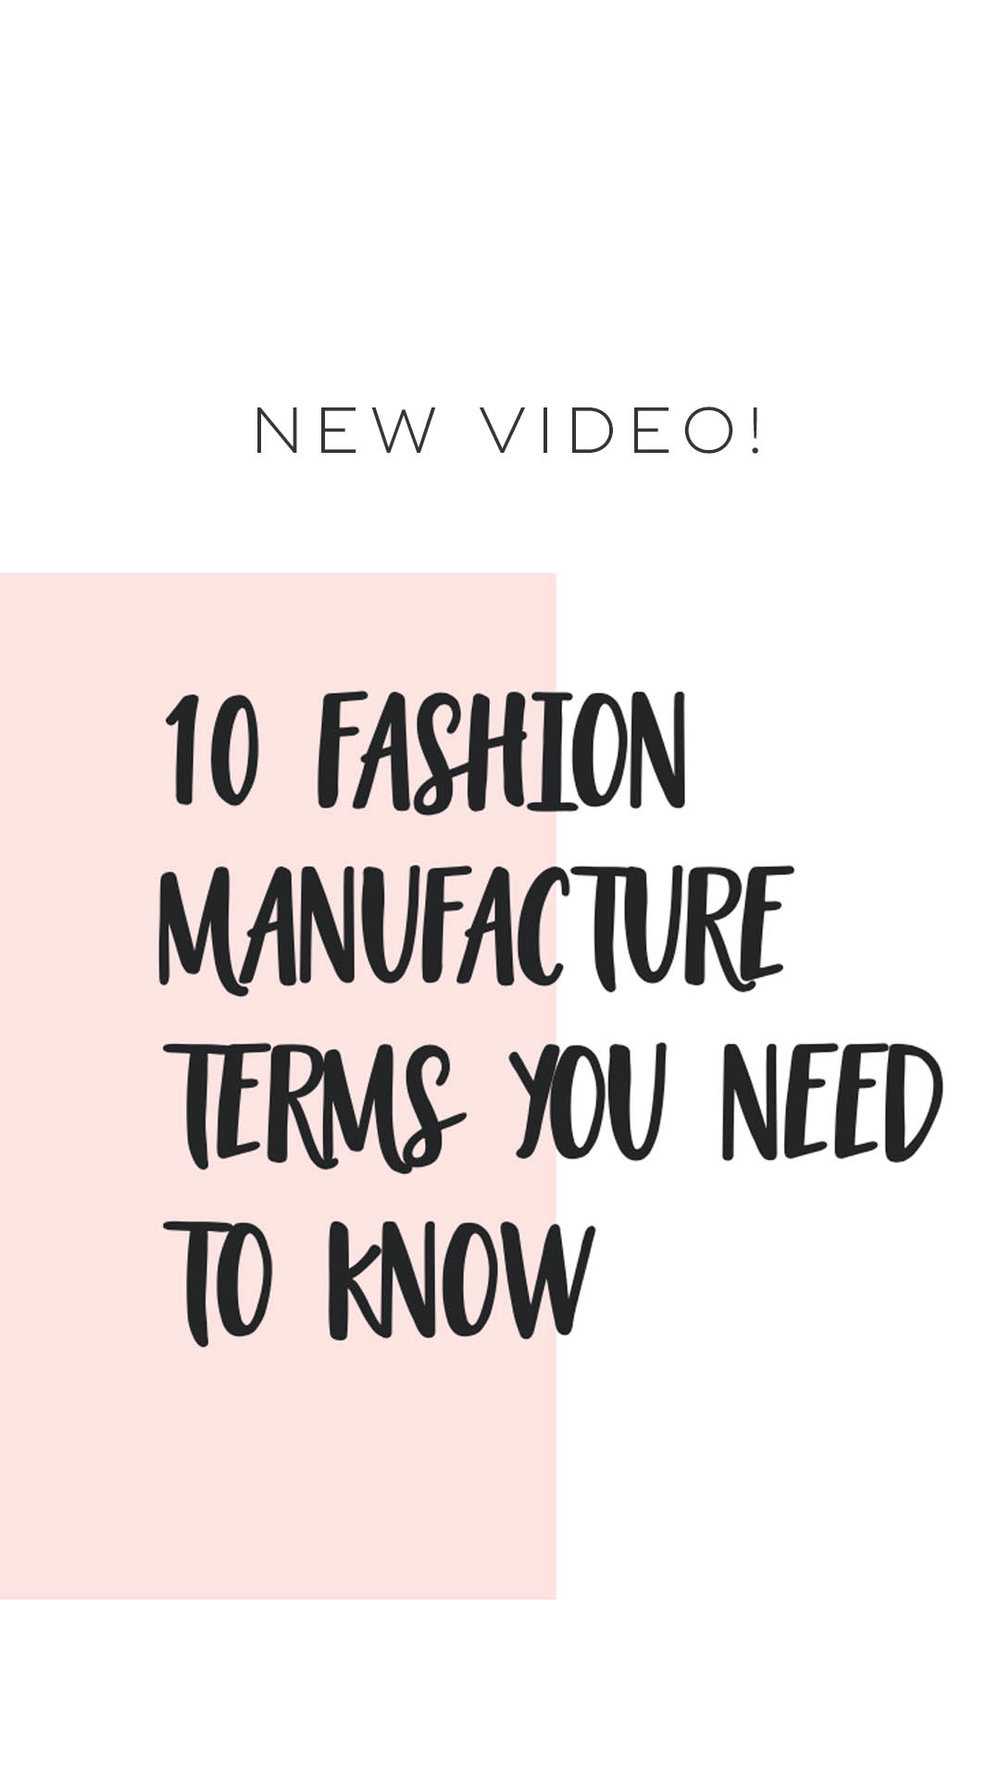 10 Terms Video